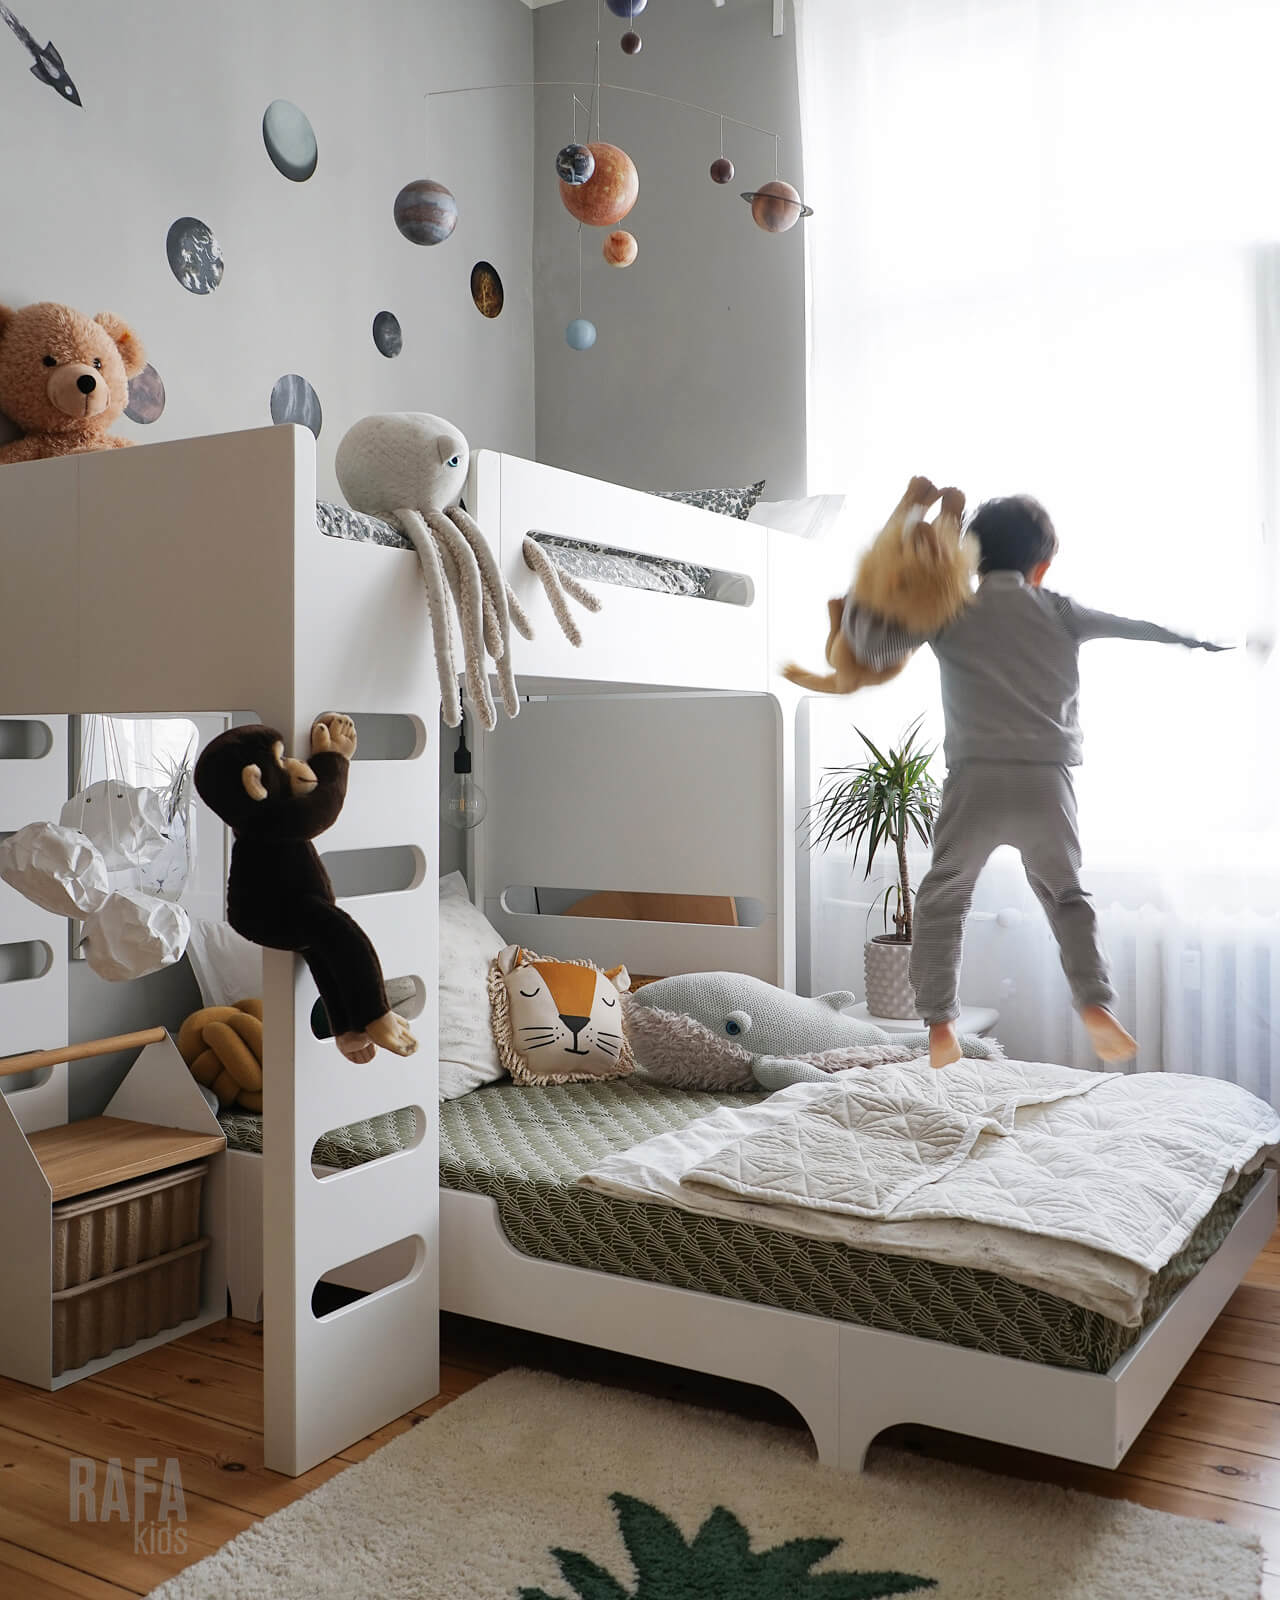 Rafa-kids F&A120 bed set